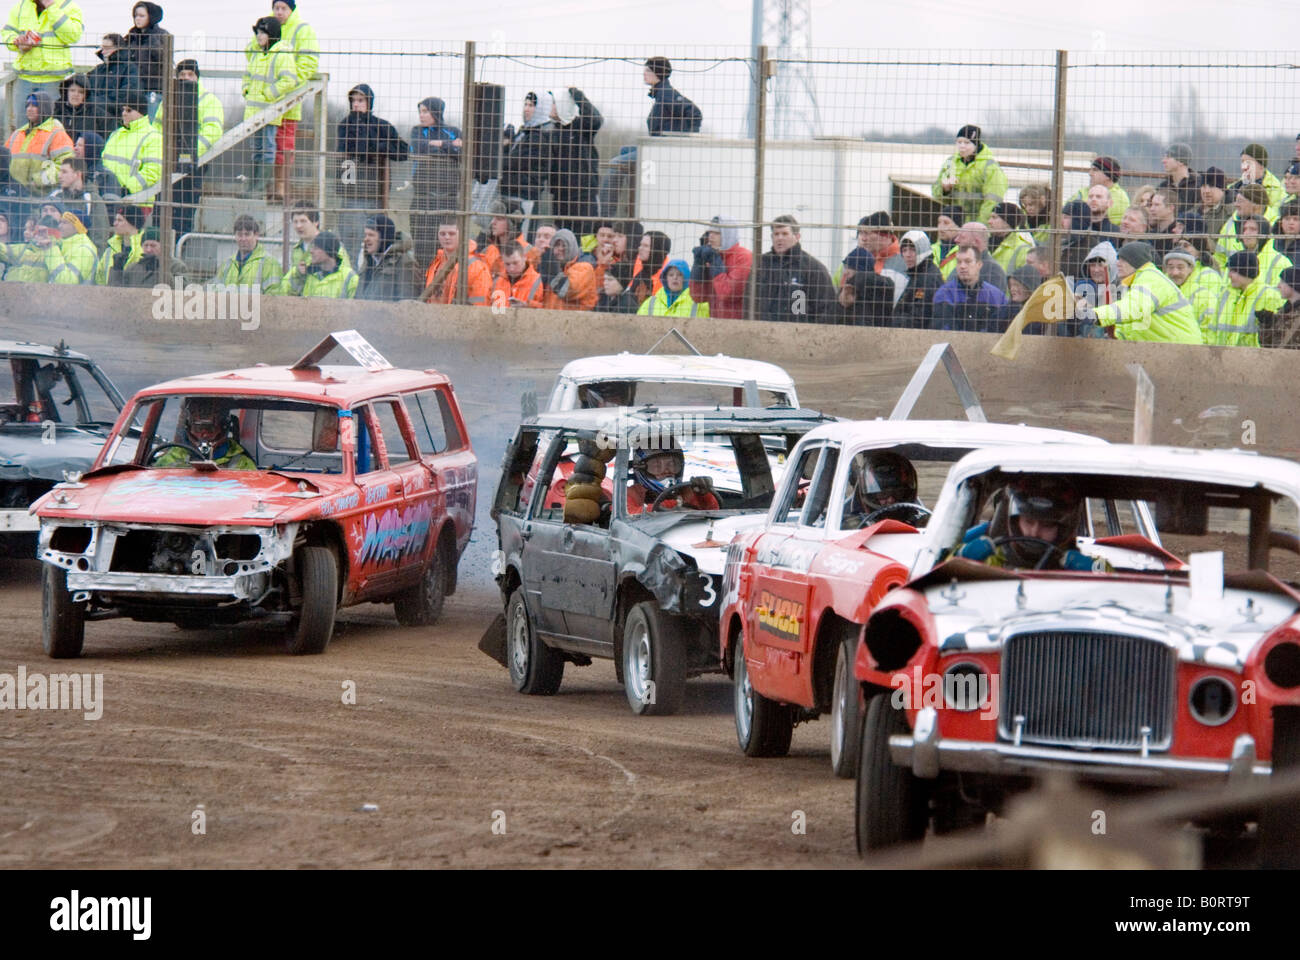 banger racing stock car track demoltion derby destruction race old ...